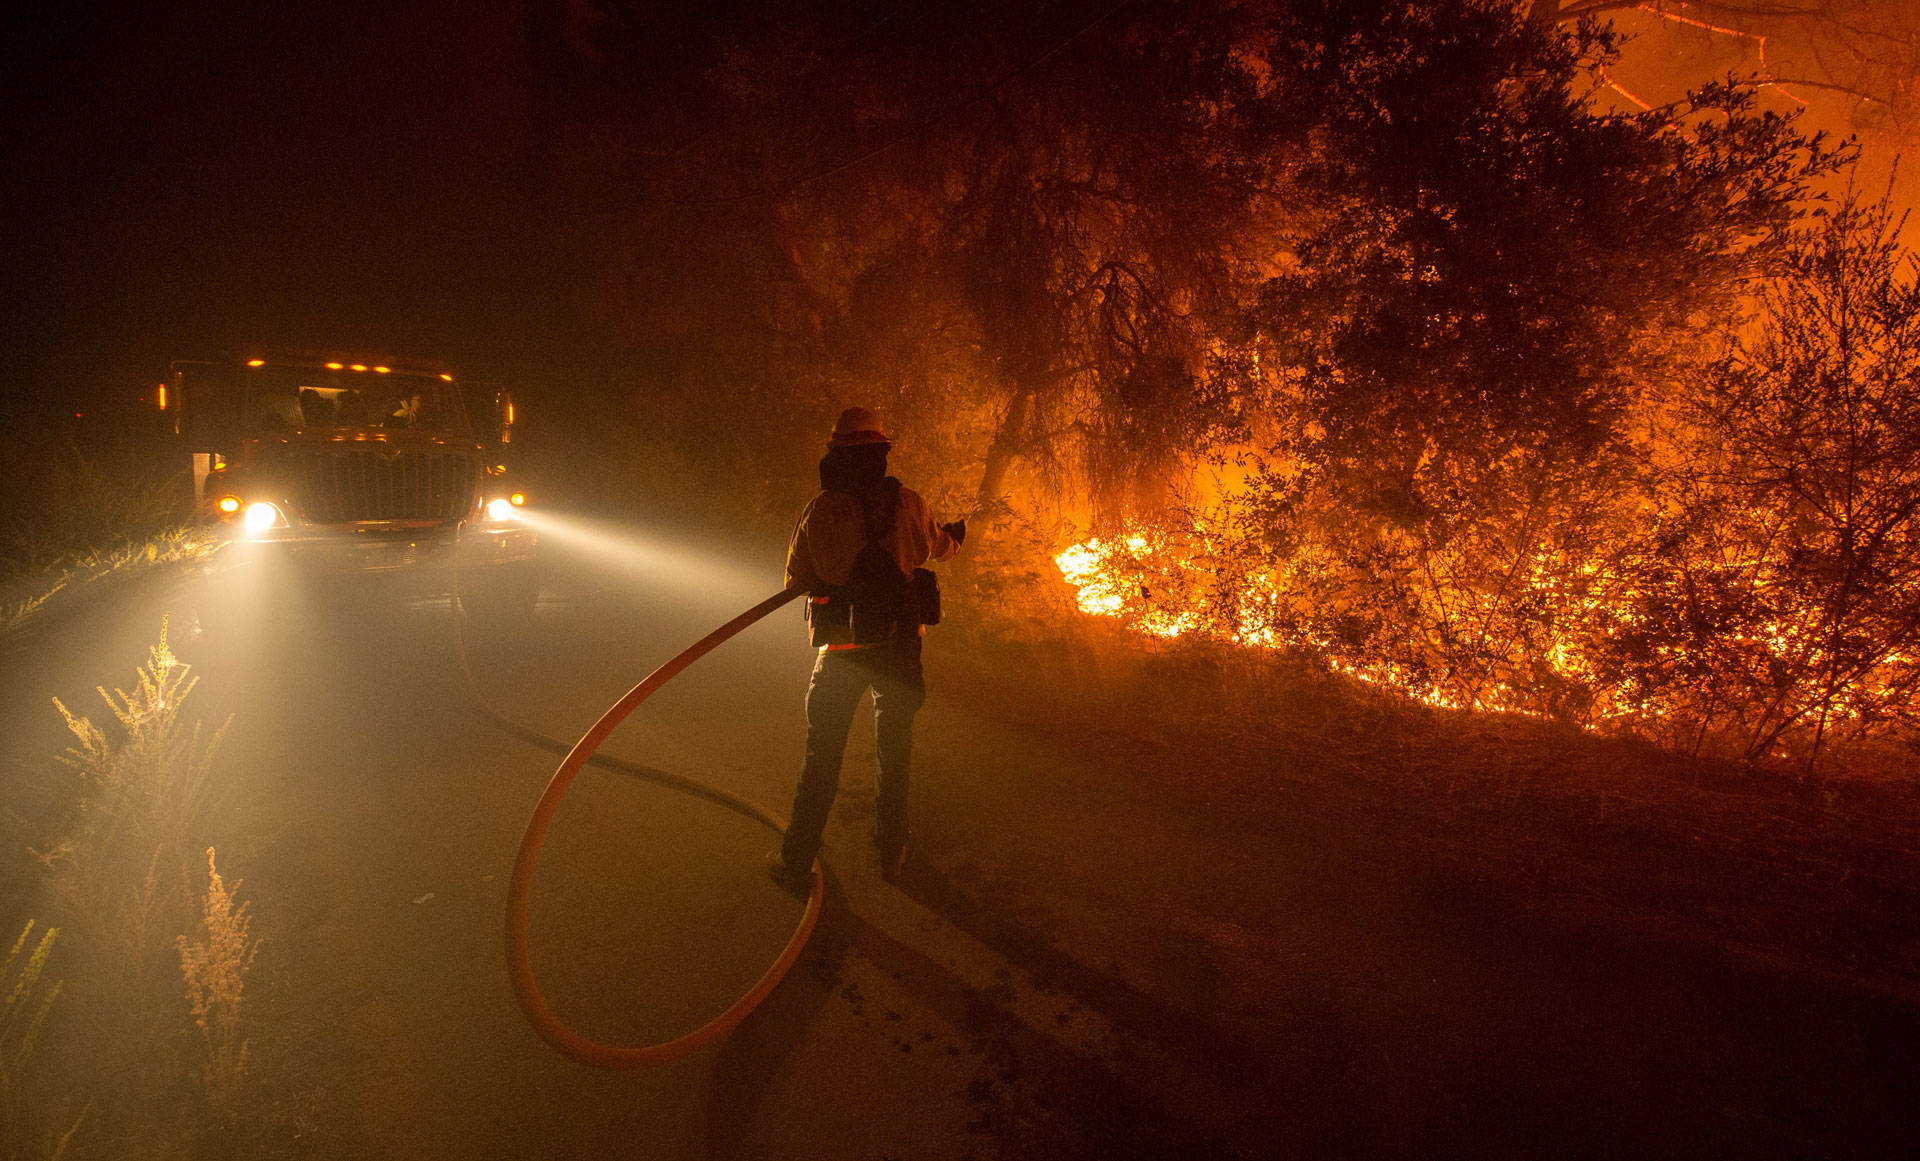 A firefighter douses flames as they approach a road in the Santa Cruz Mountains near Loma Prieta on Sept. 28, 2016. Josh Edelson/AFP/Getty Images